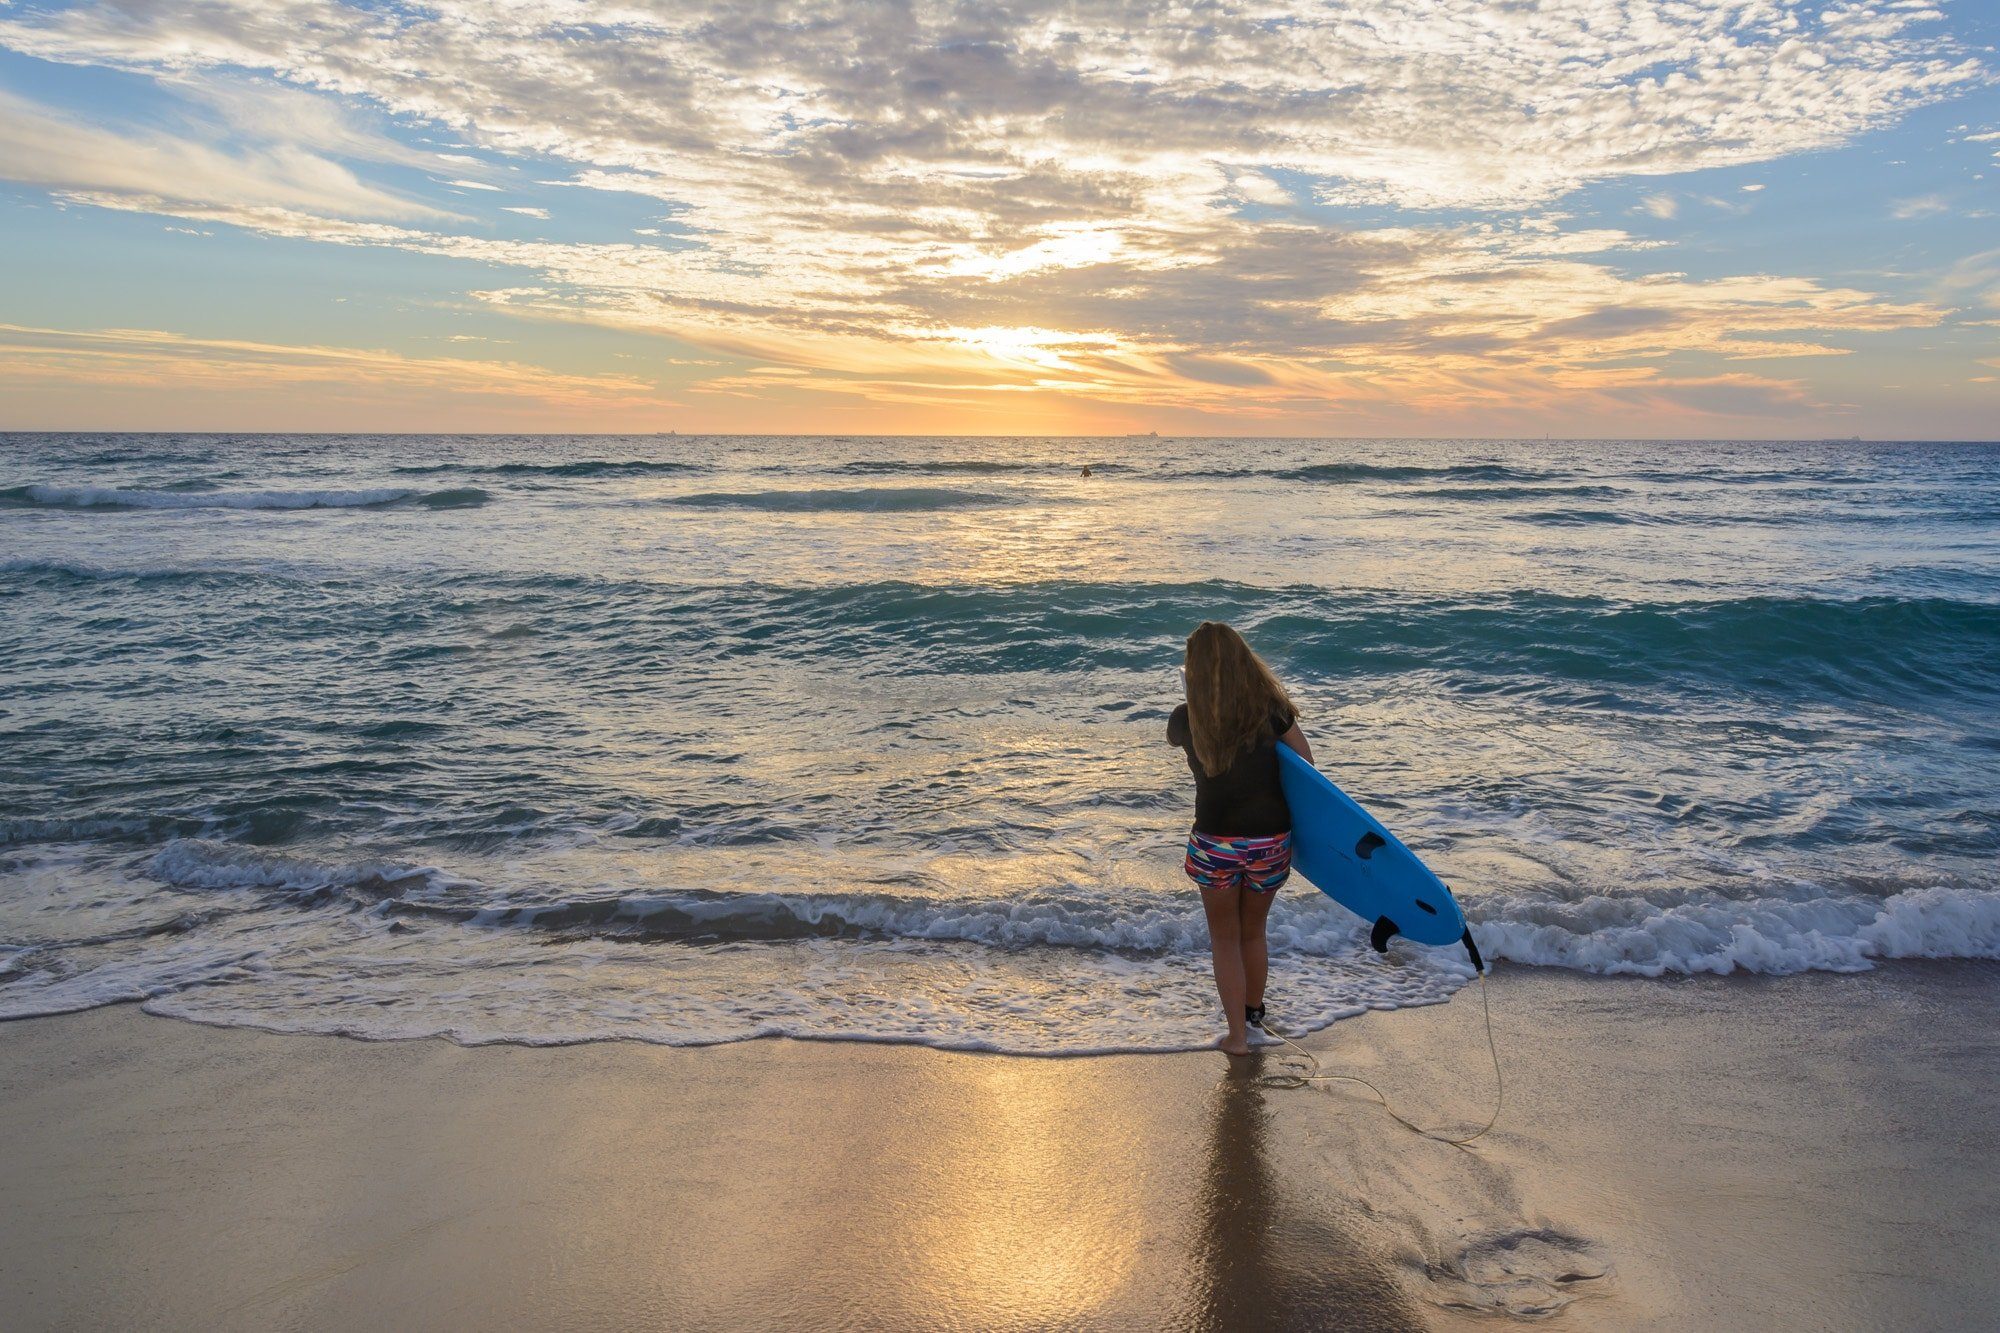 Manon walking into the ocean with a surfboard during sunset